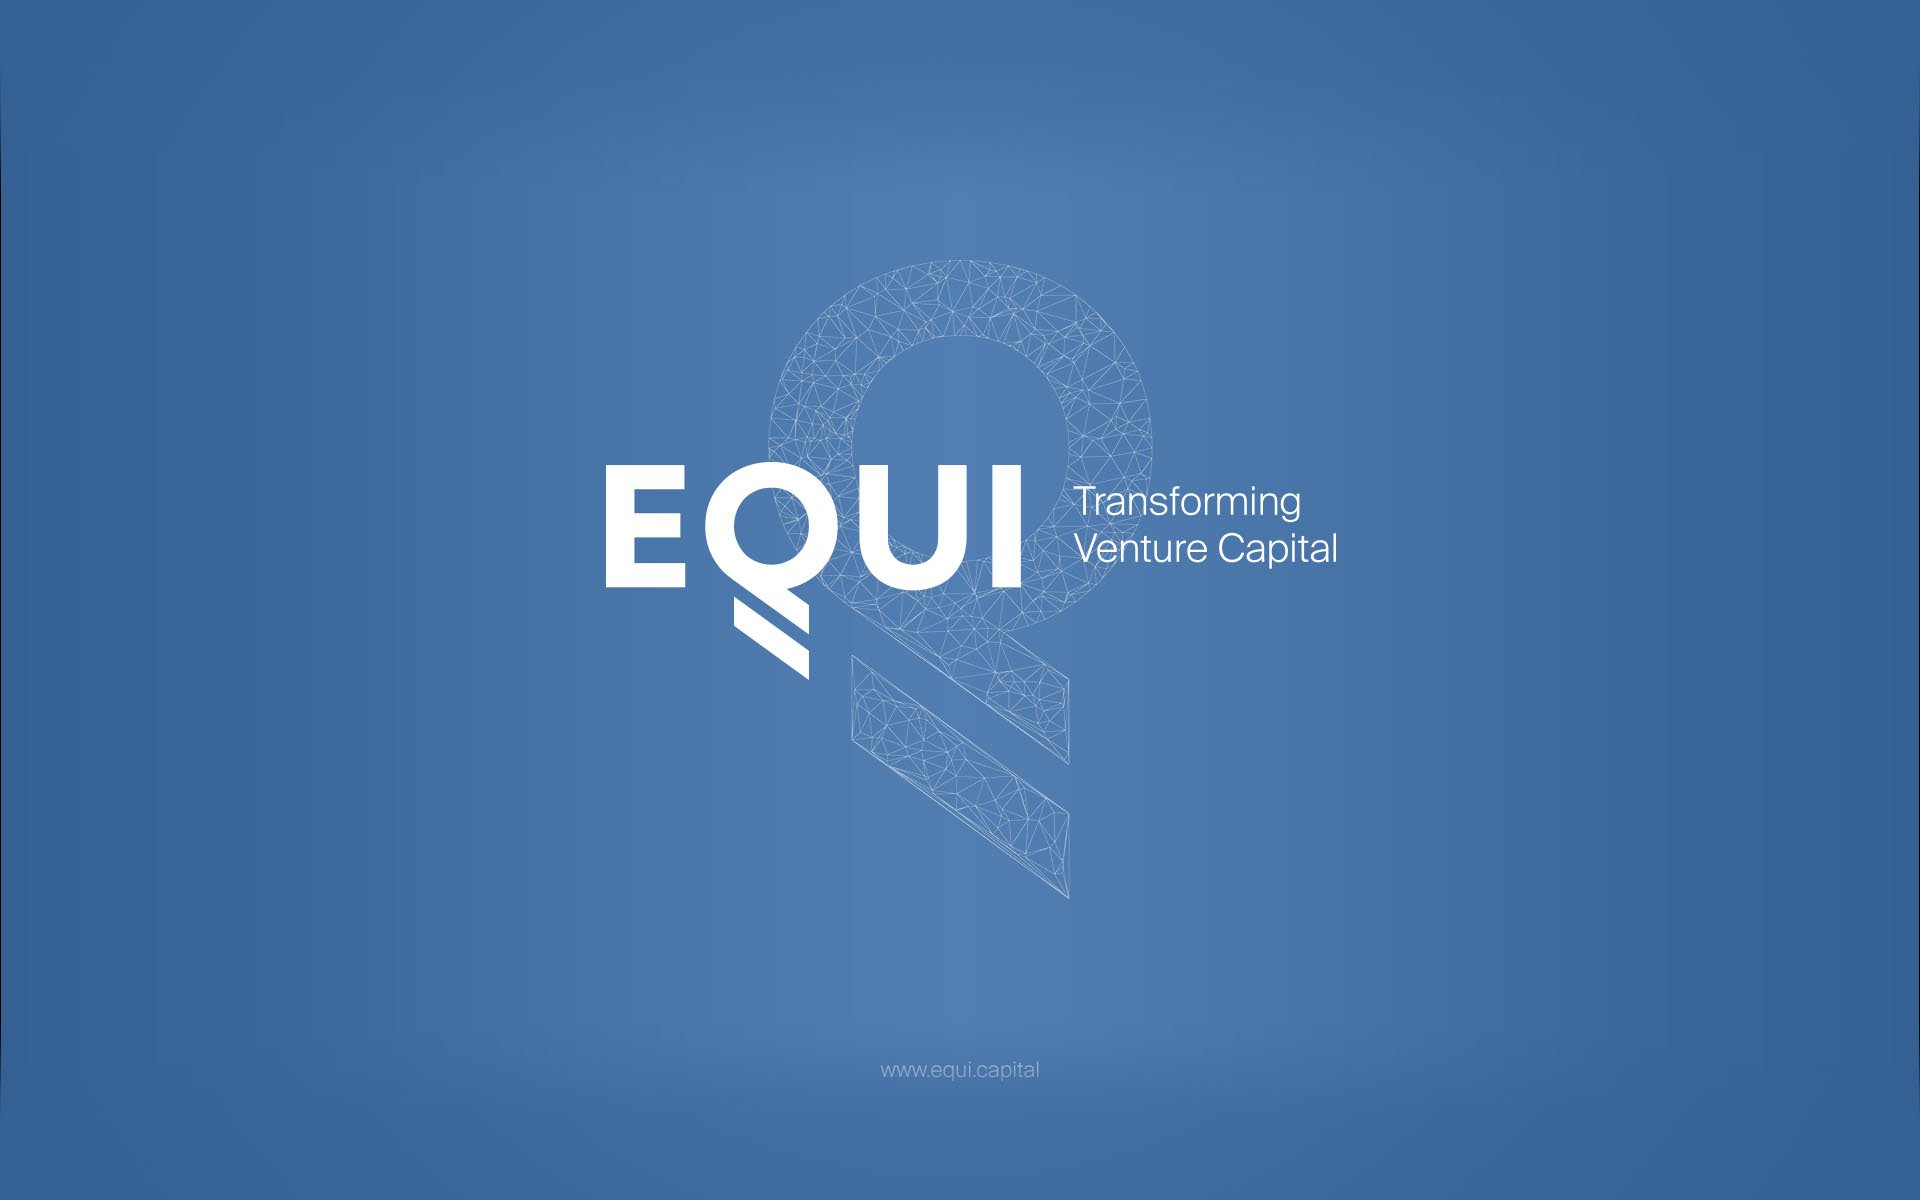 EQUI Raises $7 Million in Only a Few Days of Pre-Sale to Fund Its Mission to Radically Redesign Venture Capital